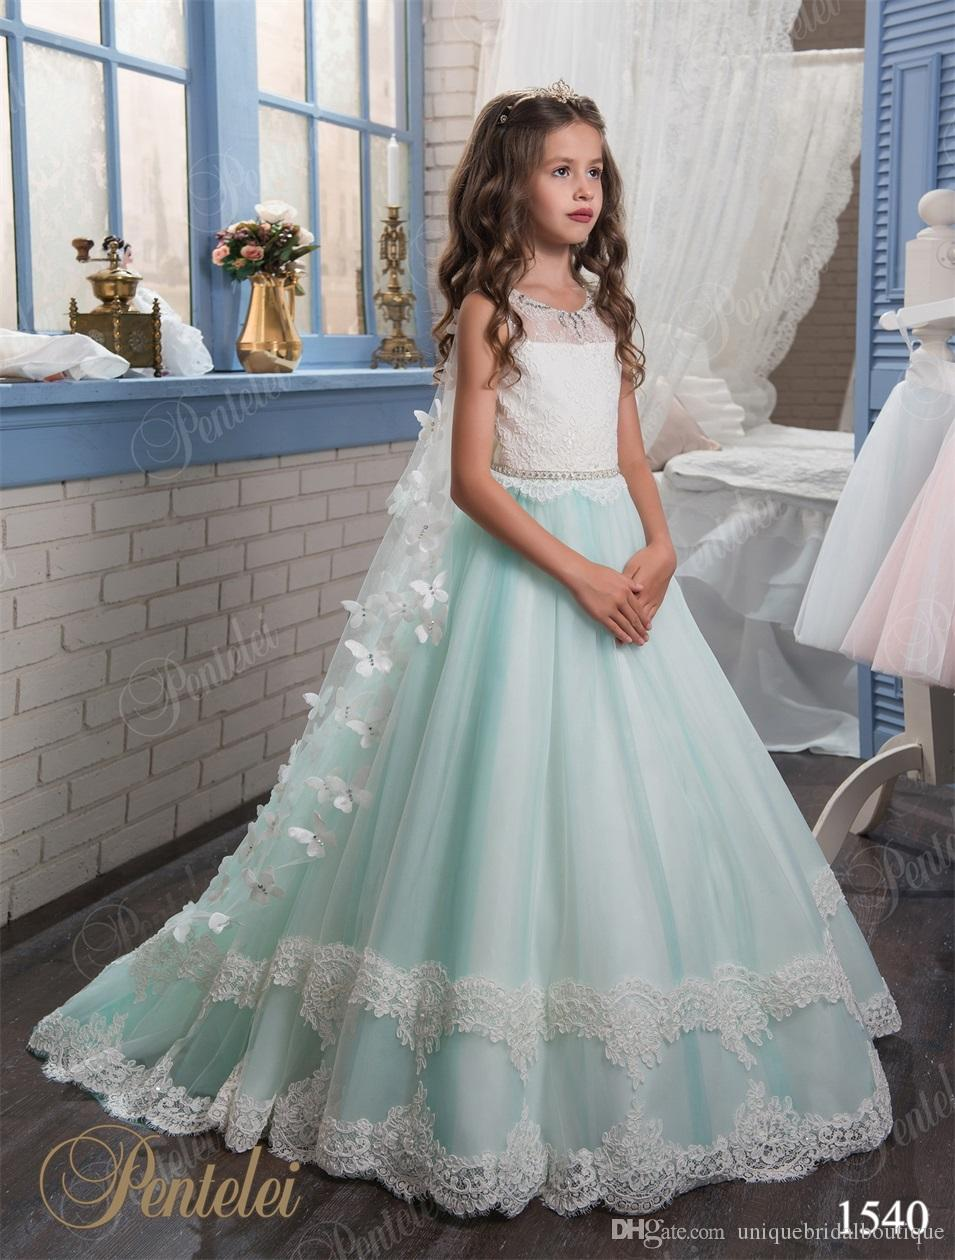 Mint Flower Girls Dresses With Wraps 2017 Pentelei With Keyhole Back ...